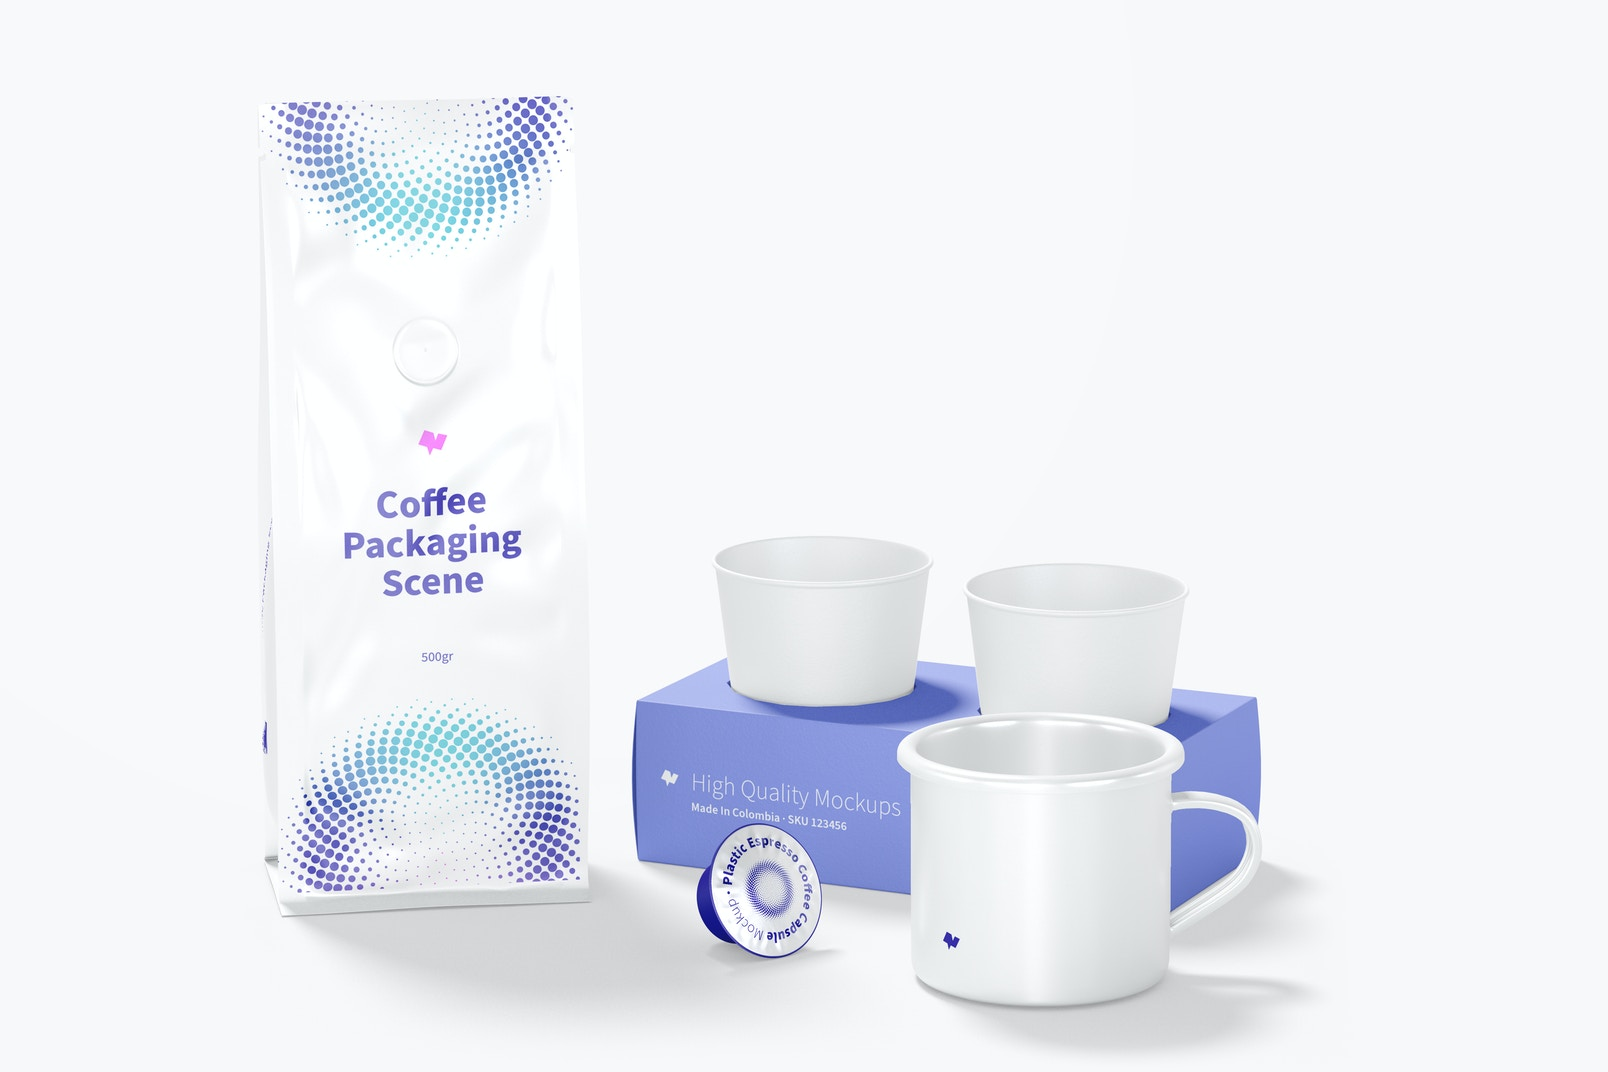 Coffee Packaging Scene Mockup, Front View